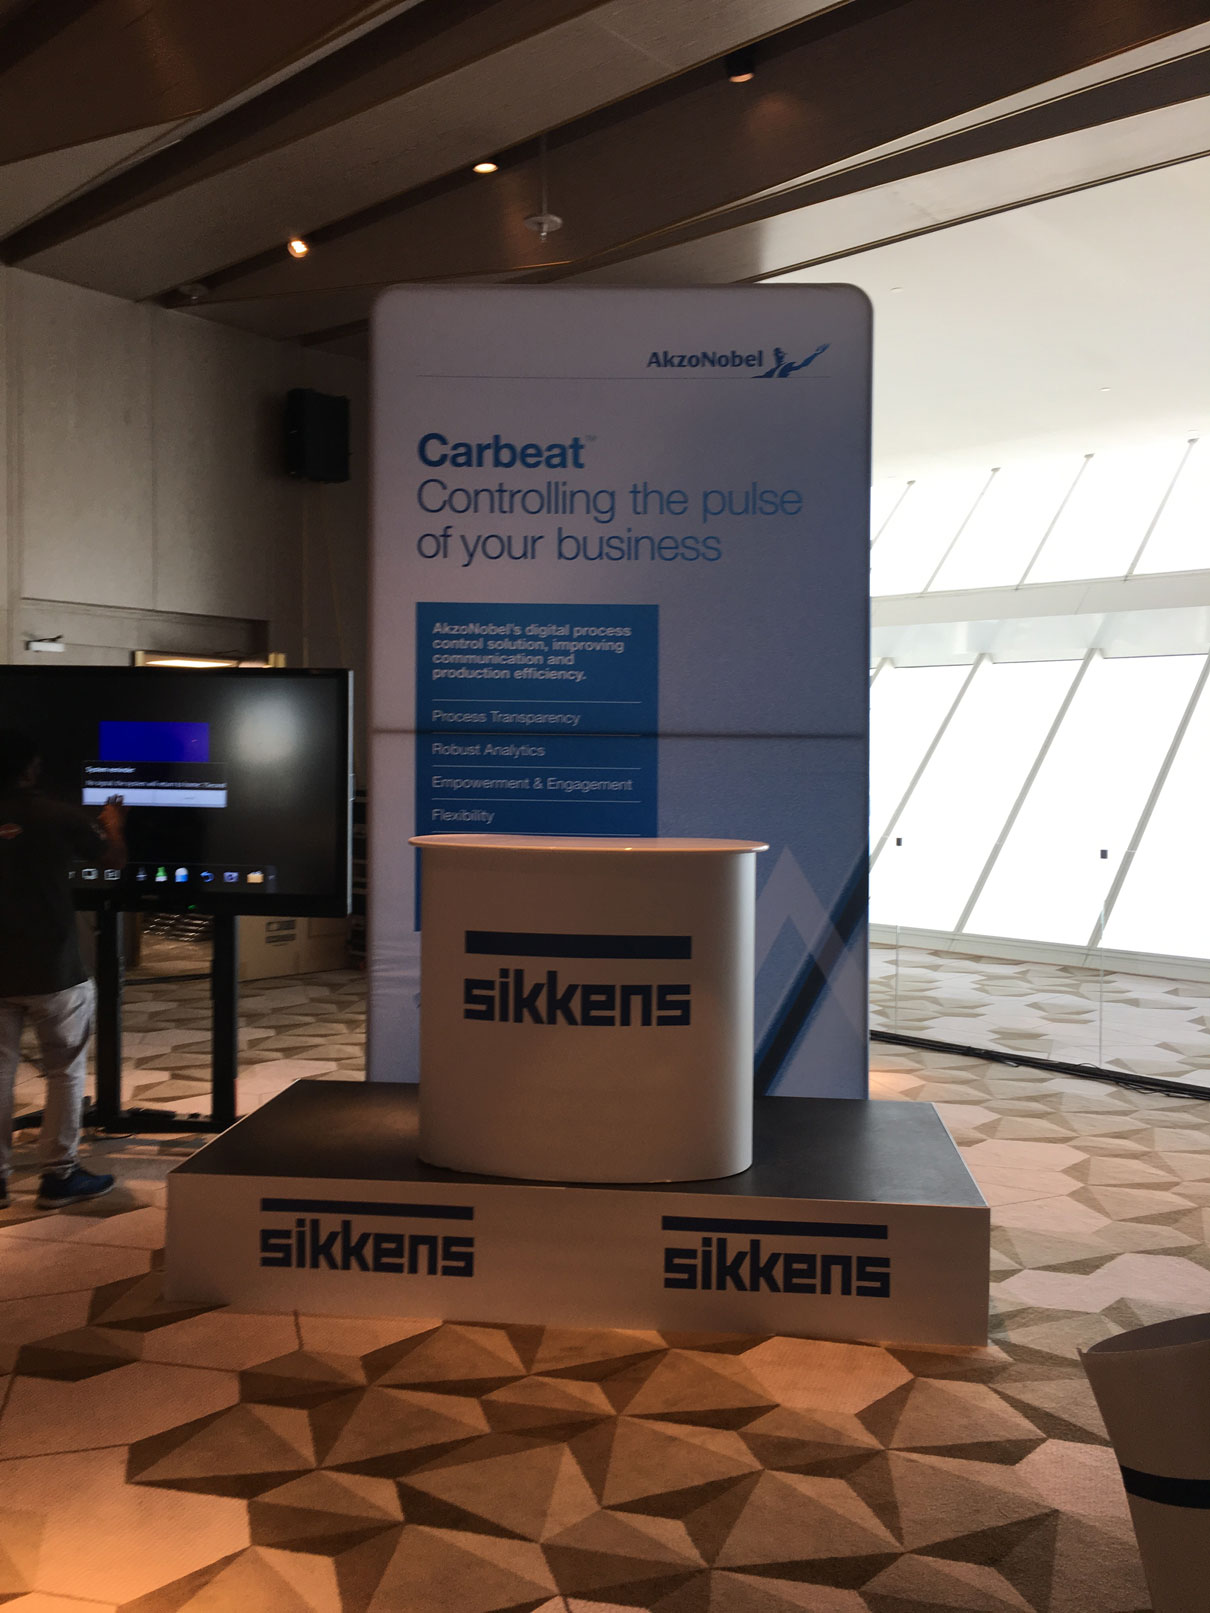 Sikkens AkzoNobel Event Branding 2 by Cornerstone